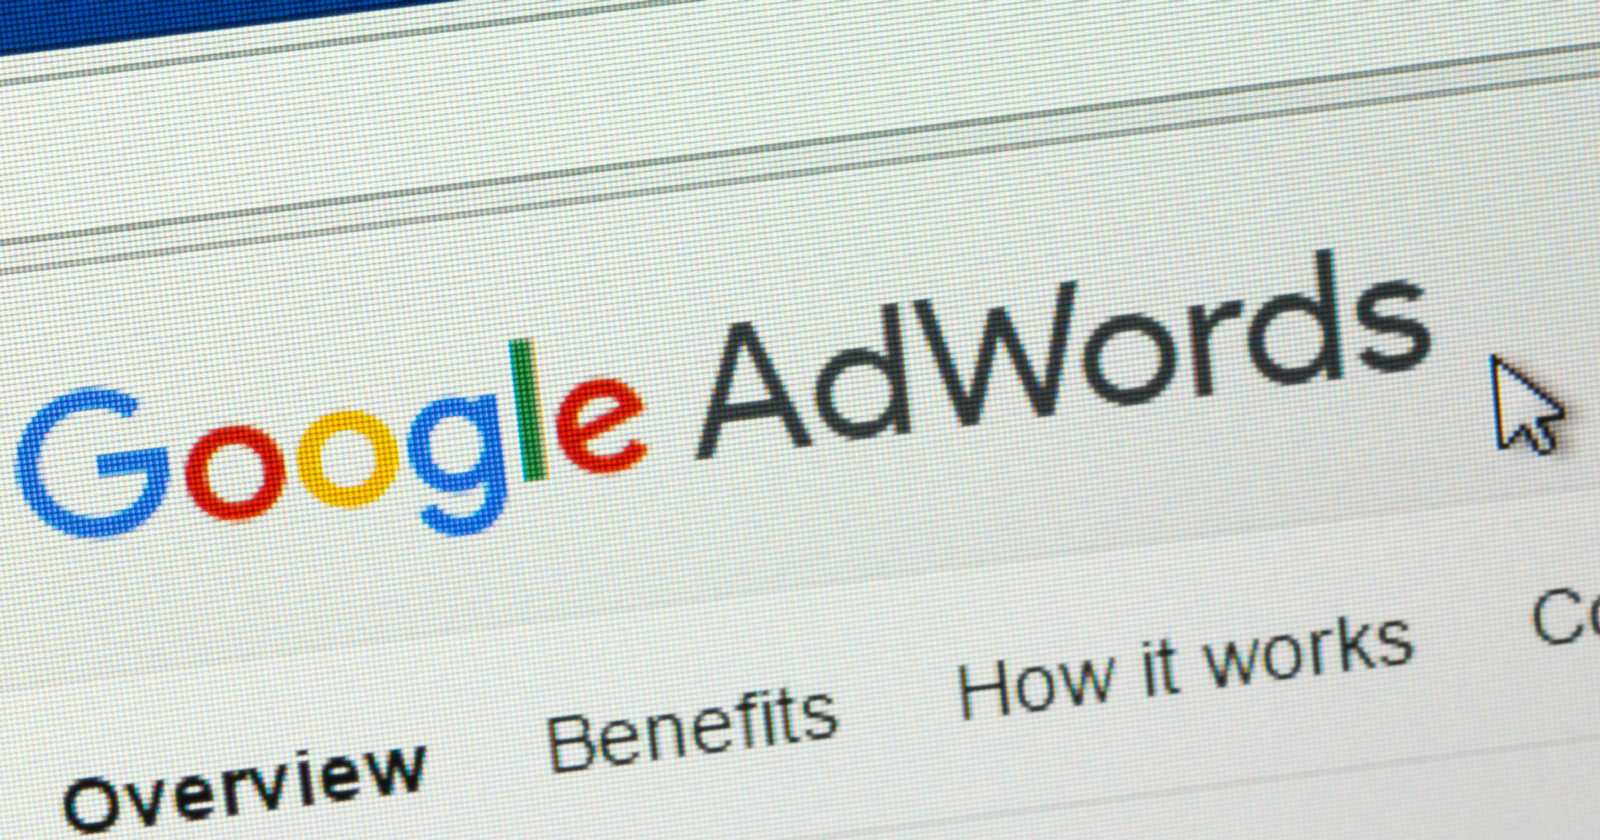 https://www.searchenginejournal.com/google-adwords-introduces-remarketing-lists-search-ads/196169/